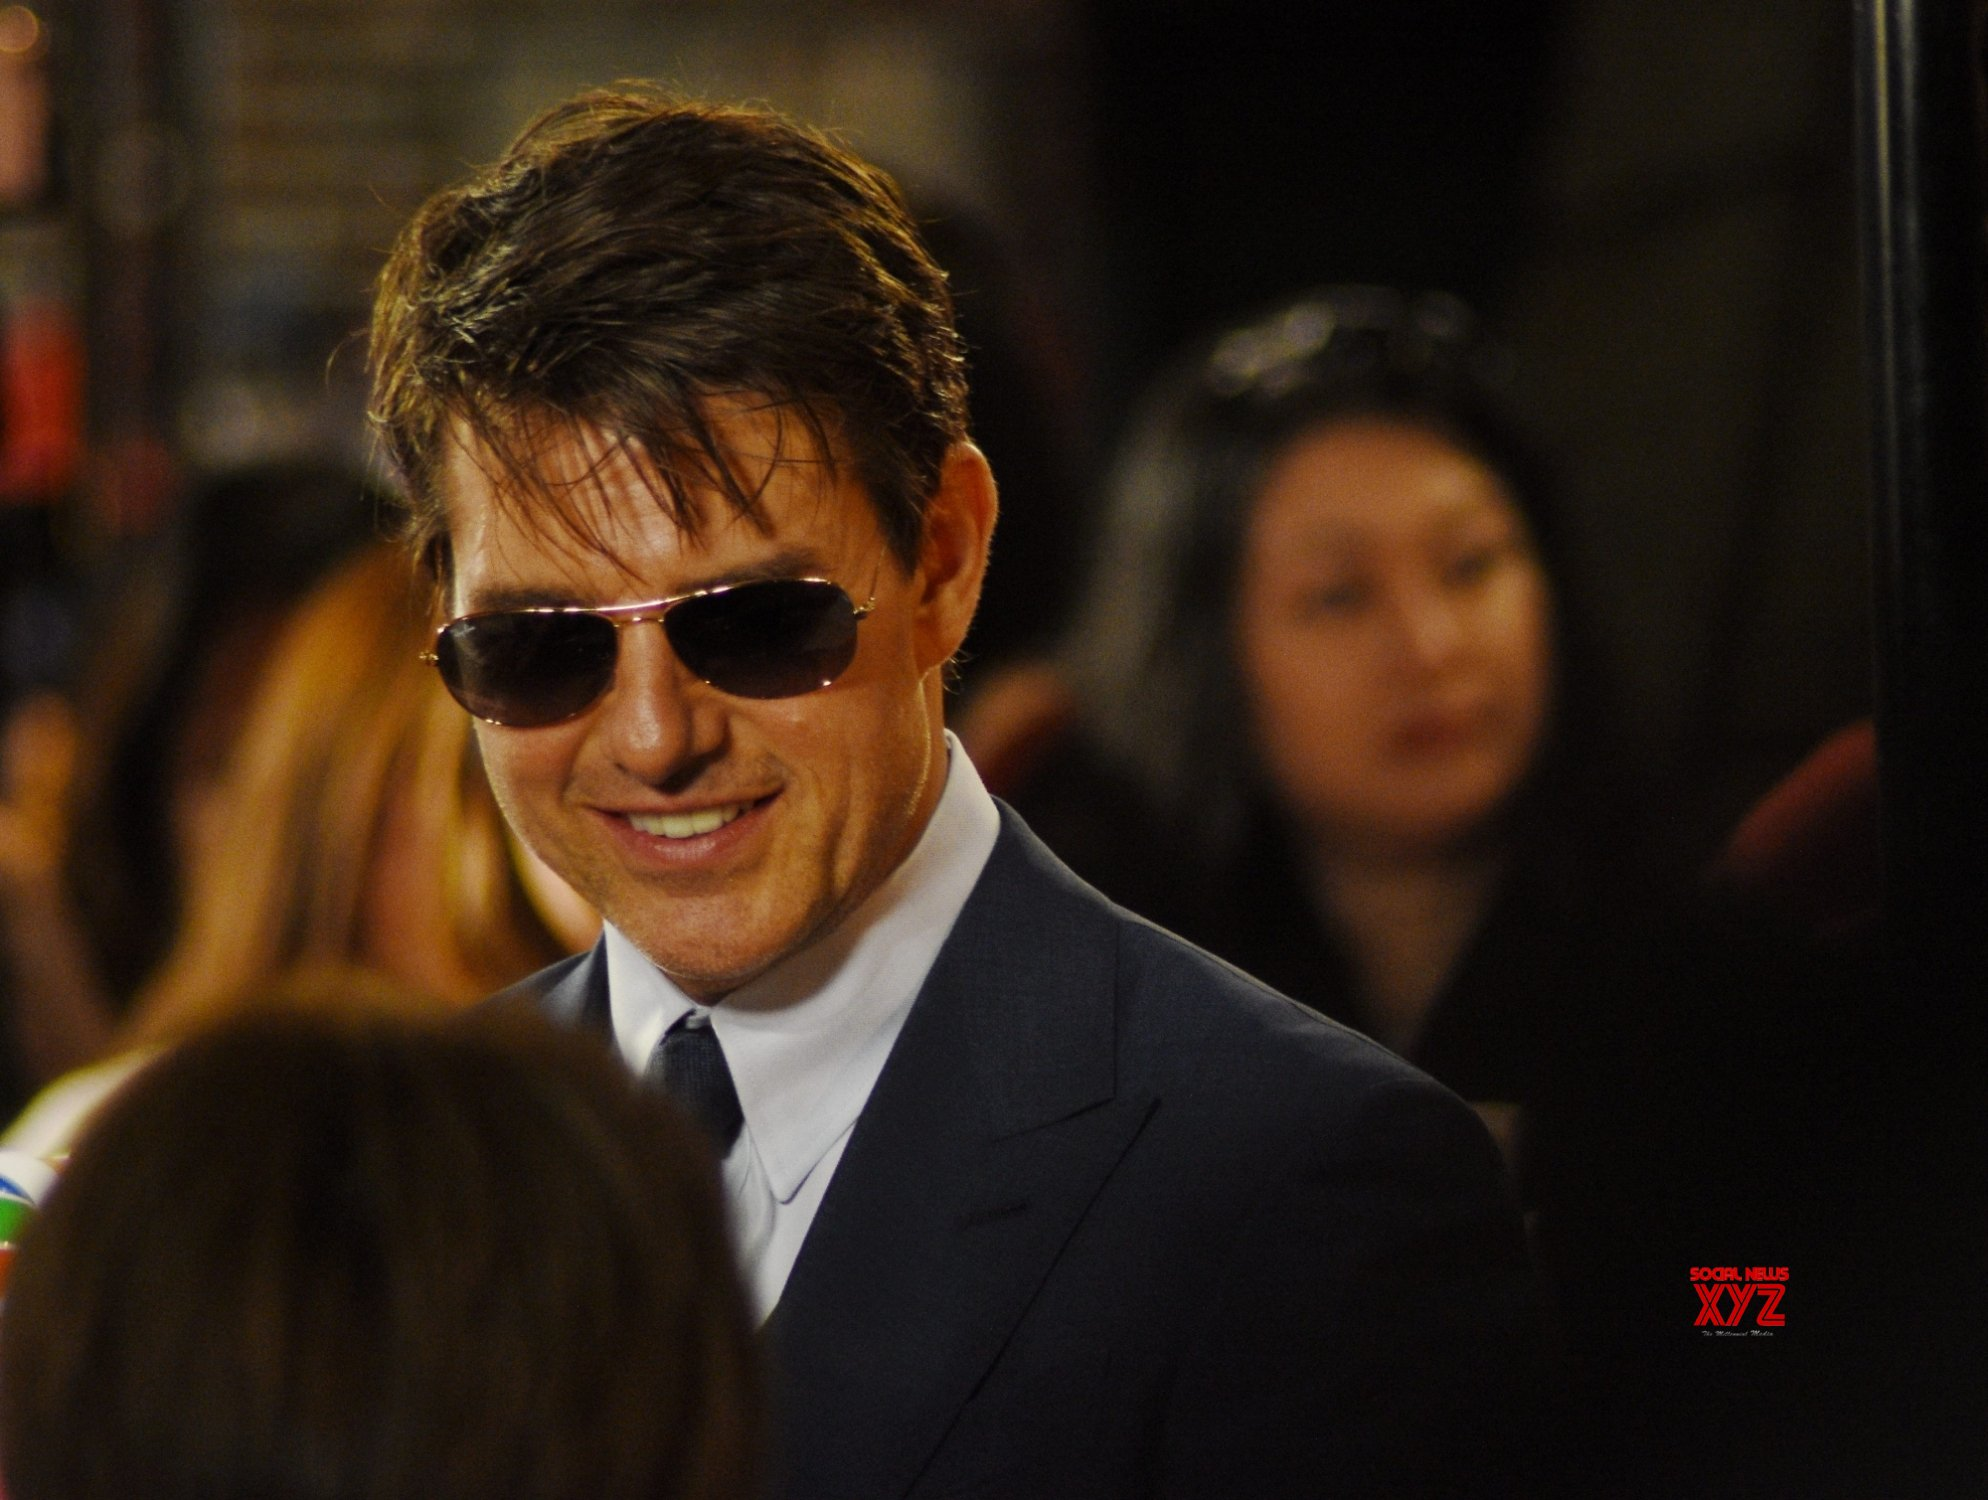 Tom Cruise's movie in space to be directed by Doug Liman